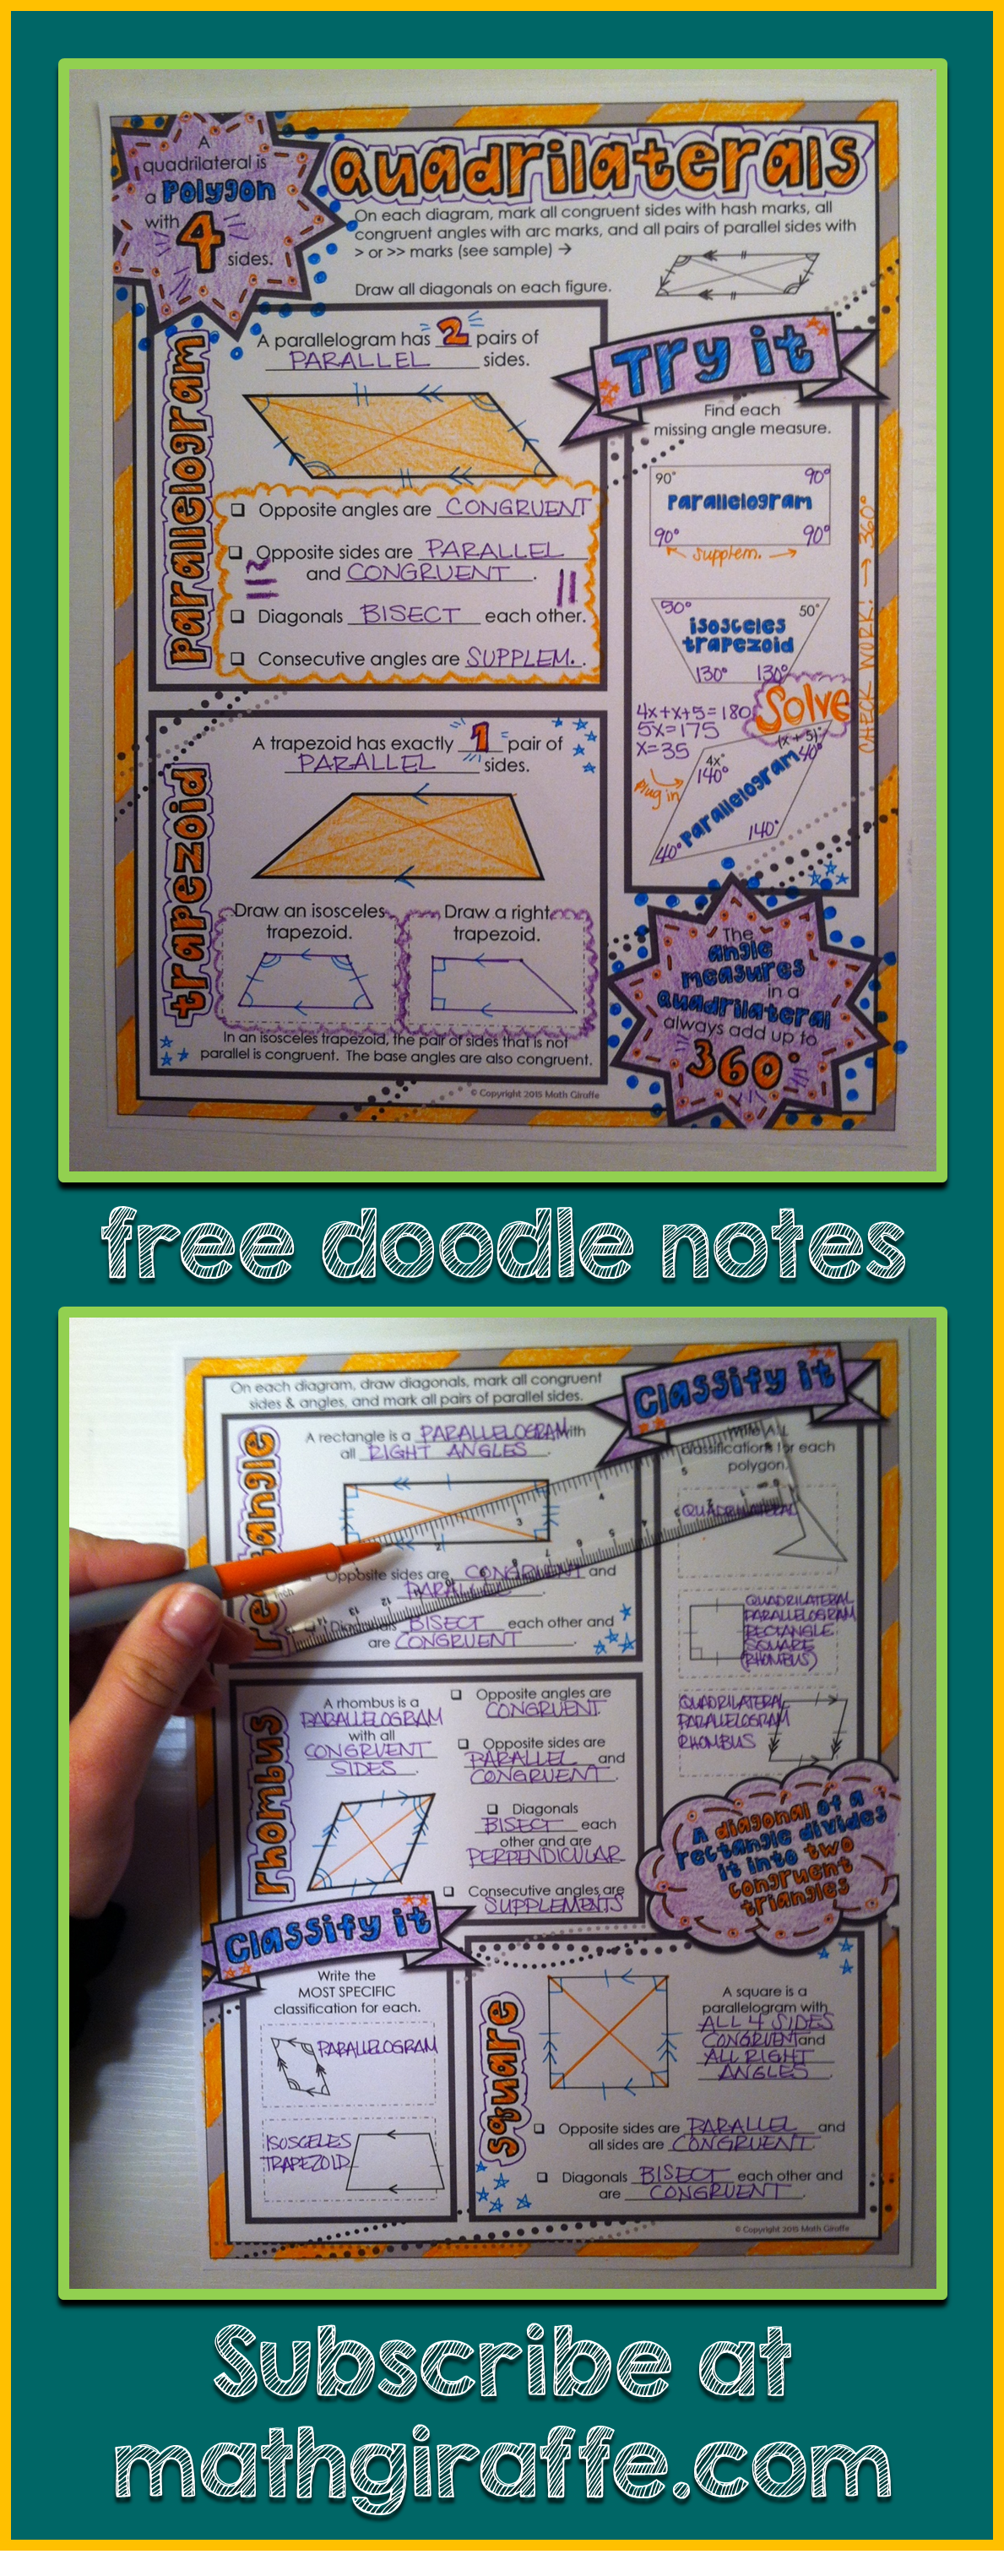 Quadrilaterals - Classifications & Properties Free Doodle